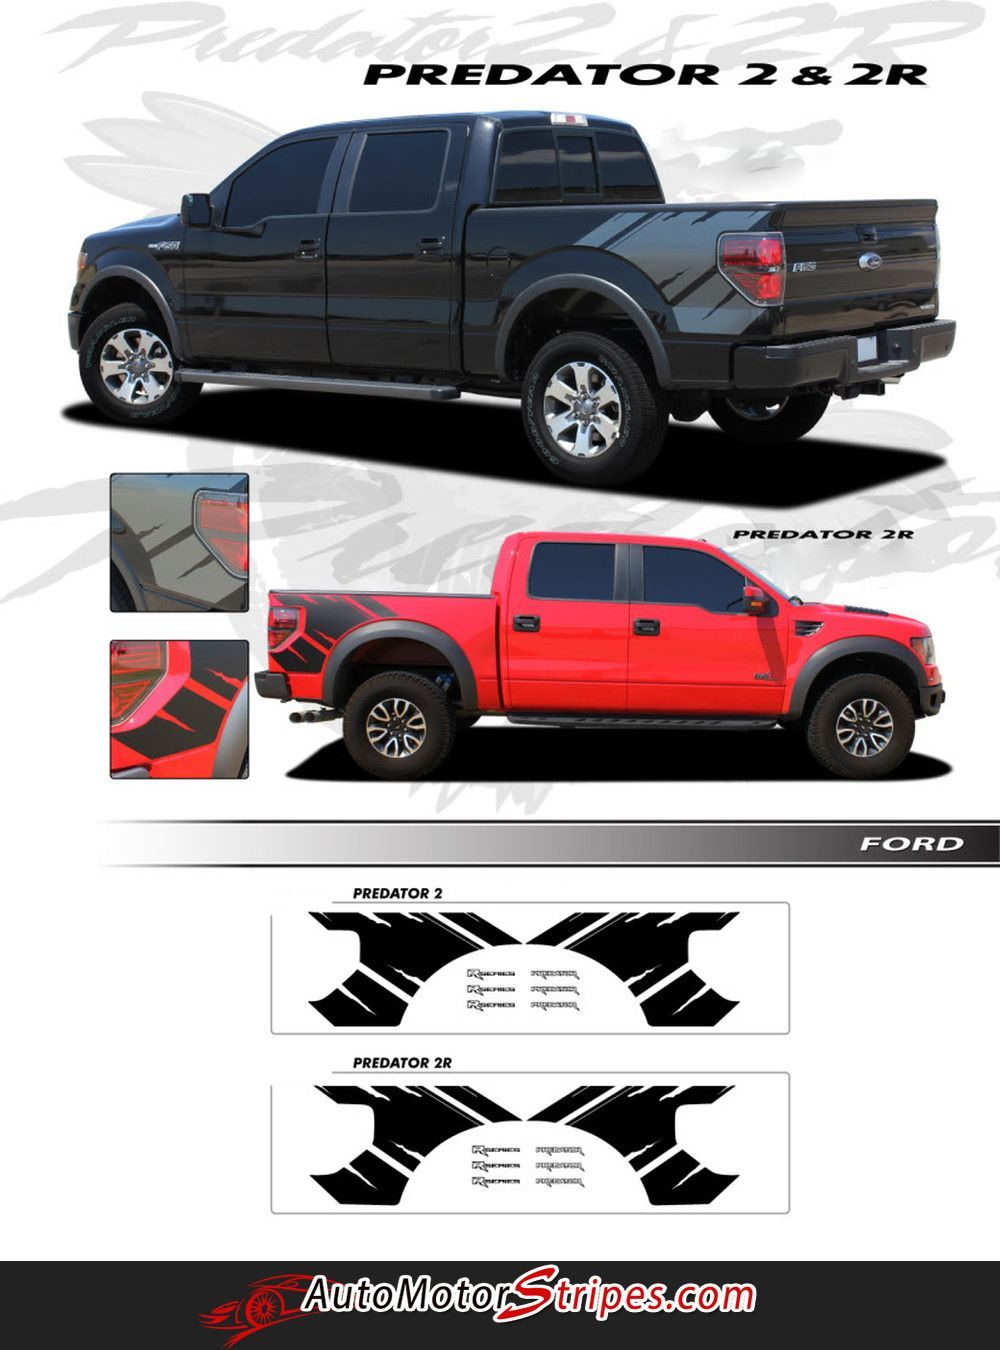 2009 2014 Ford F 150 Predator 2 Factory Raptor Style Bed Vinyl Decal Graphic 3m Stripes Ford F150 Rally Stripes Vinyl Decals